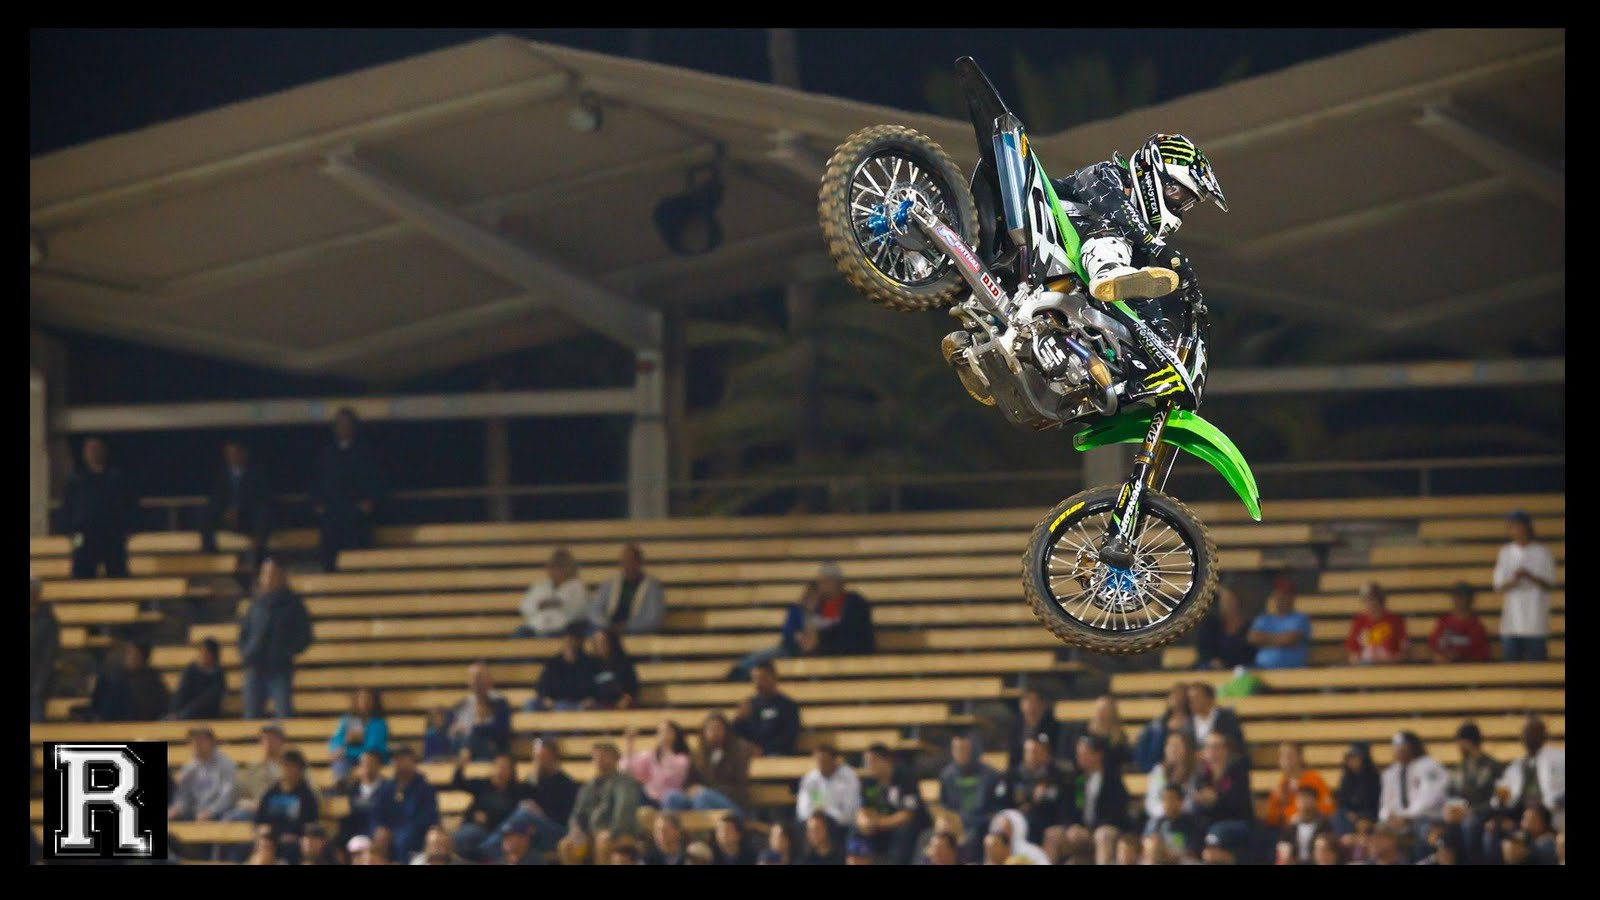 Wallpaper Pictures Wallpaper Ama Supercross 2012 1600x900